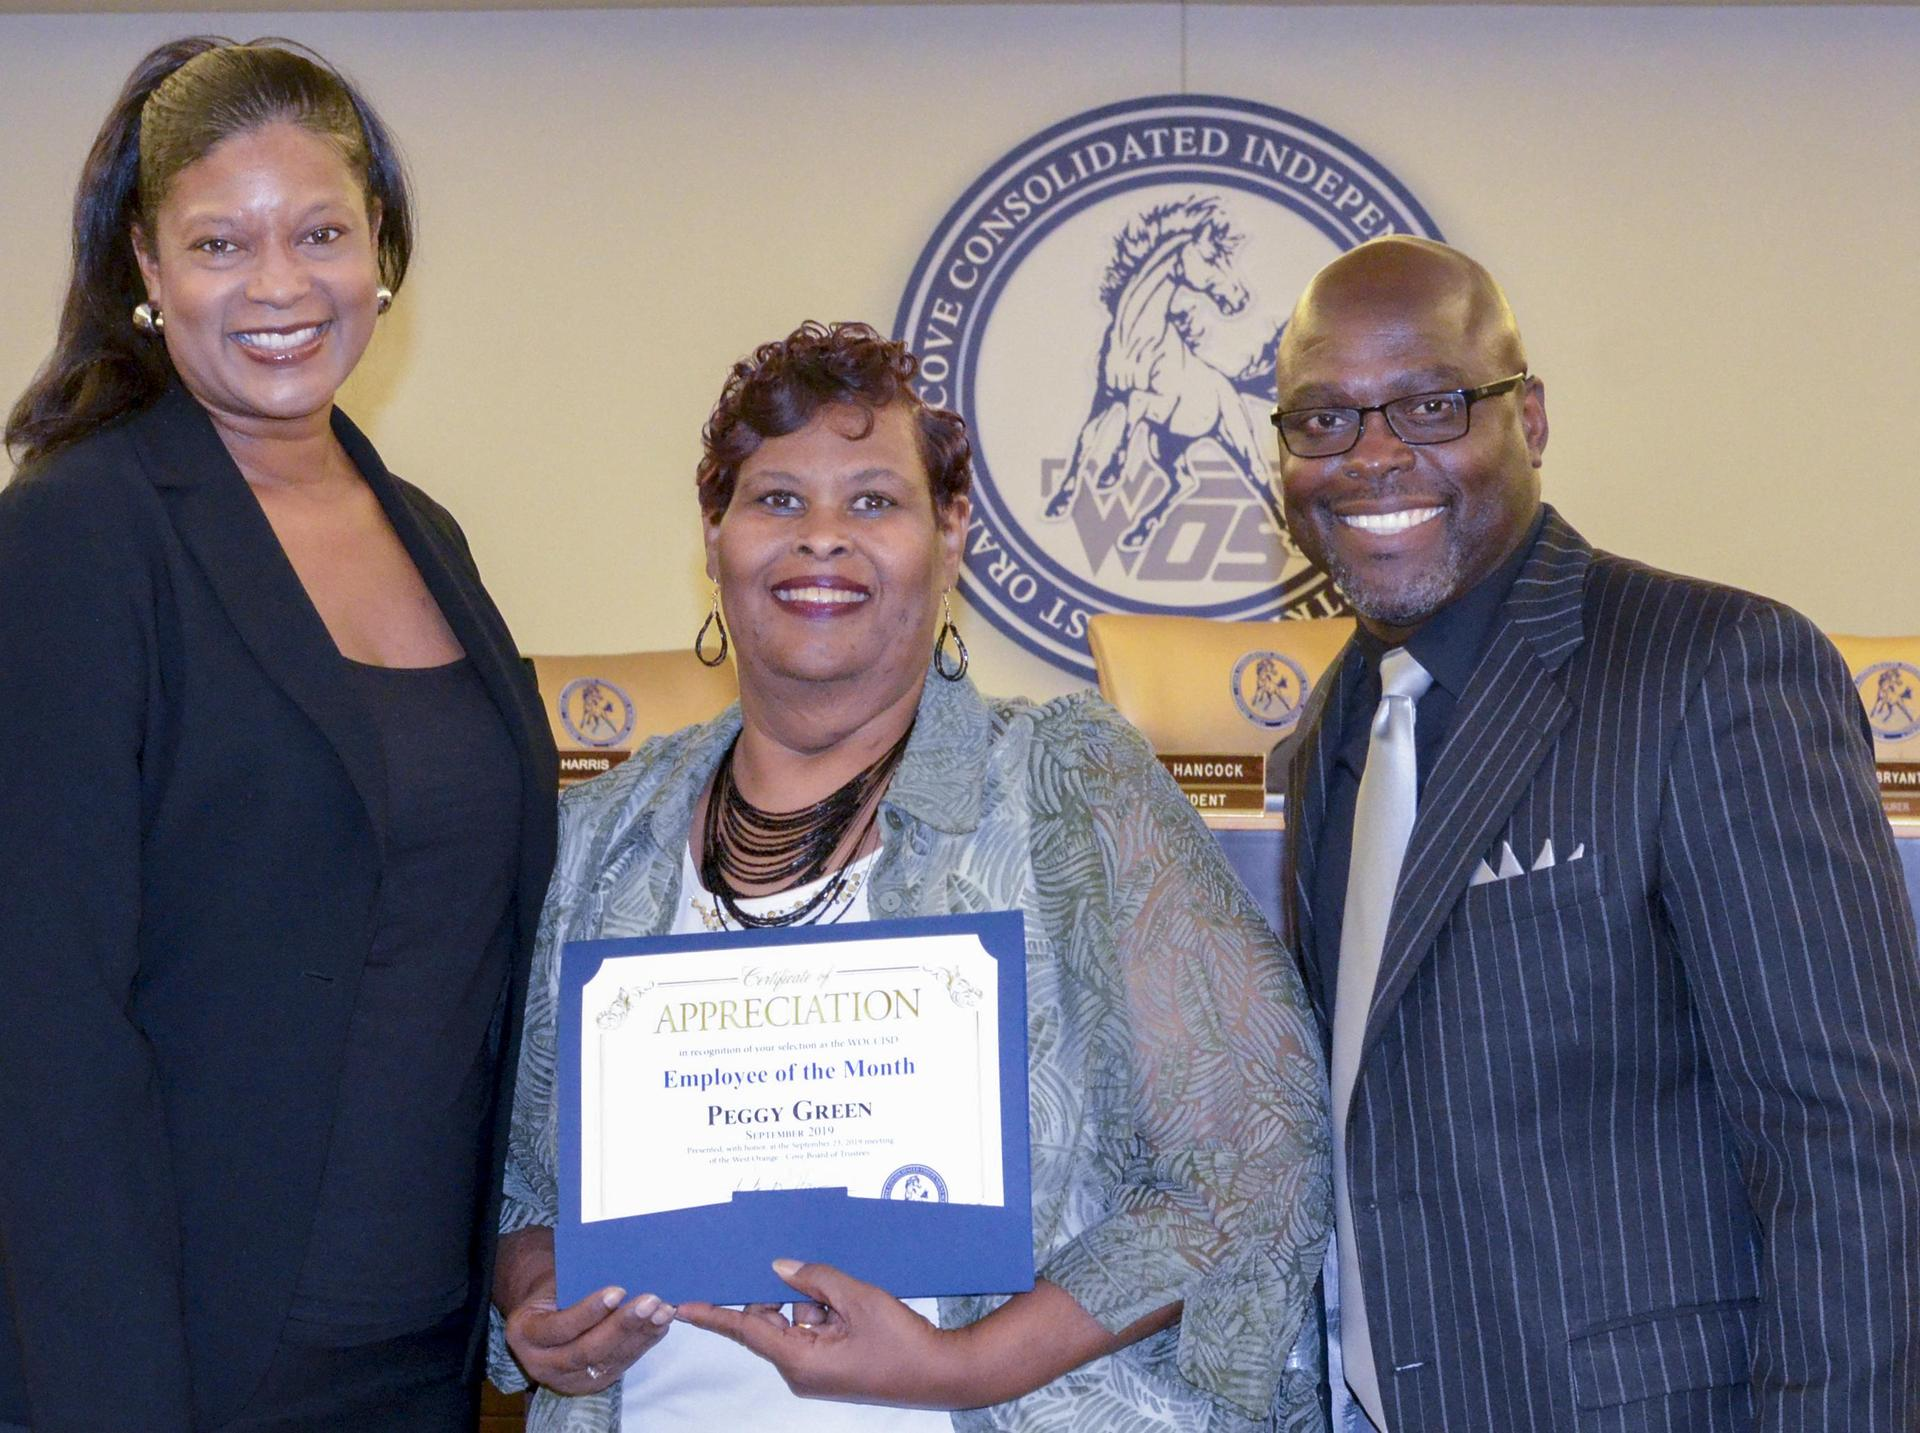 Peggy Green, September's Employee of the Month. Pictured with WOS High School Principal Ms. Rolanda Holifield and Superintendent Dr. Rickie Harris.